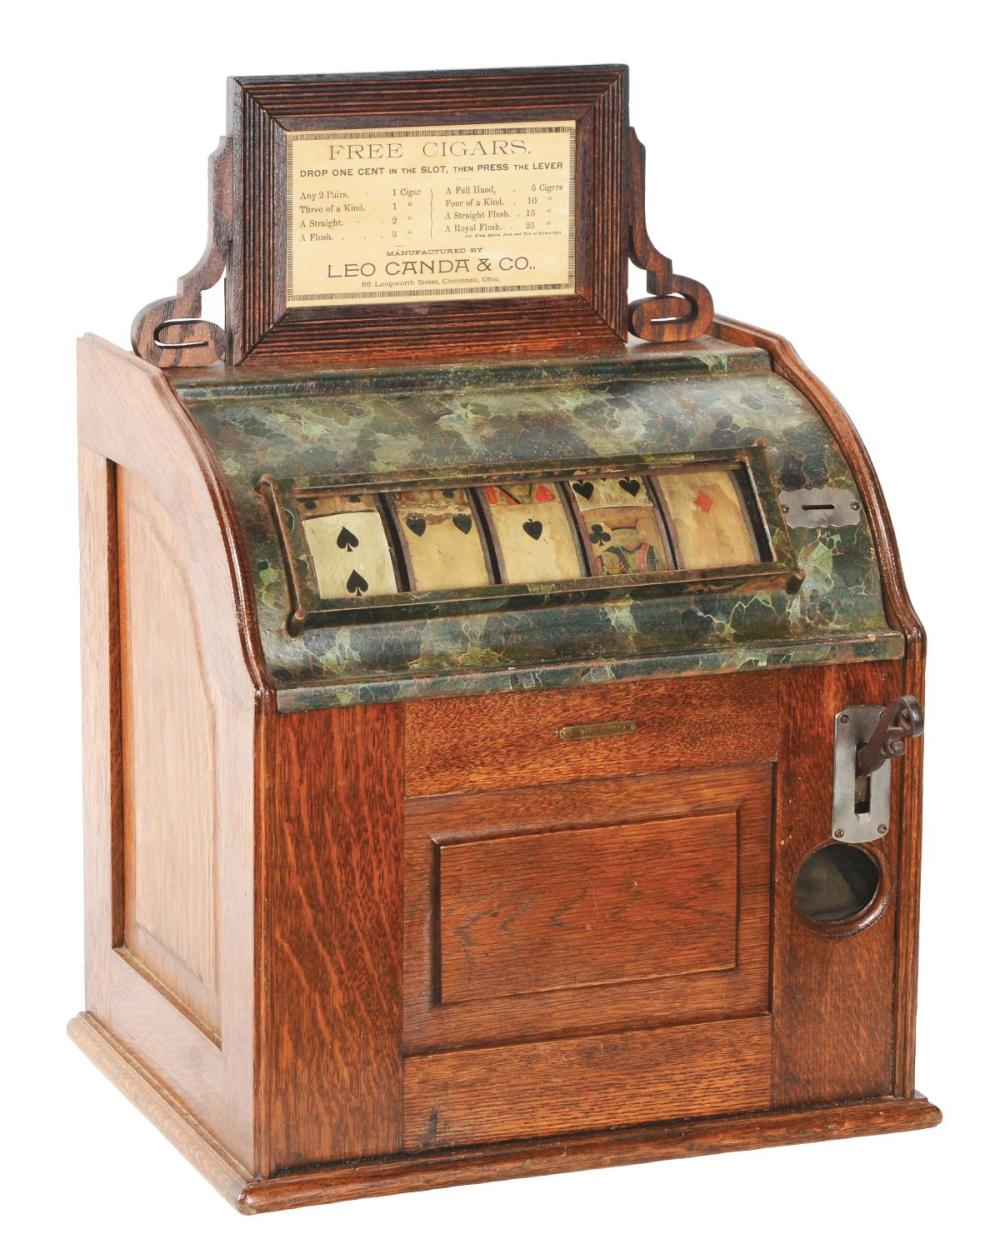 1¢ LEO CANDA COUNTER JUMBO CIGAR TRADE STIMULATOR.